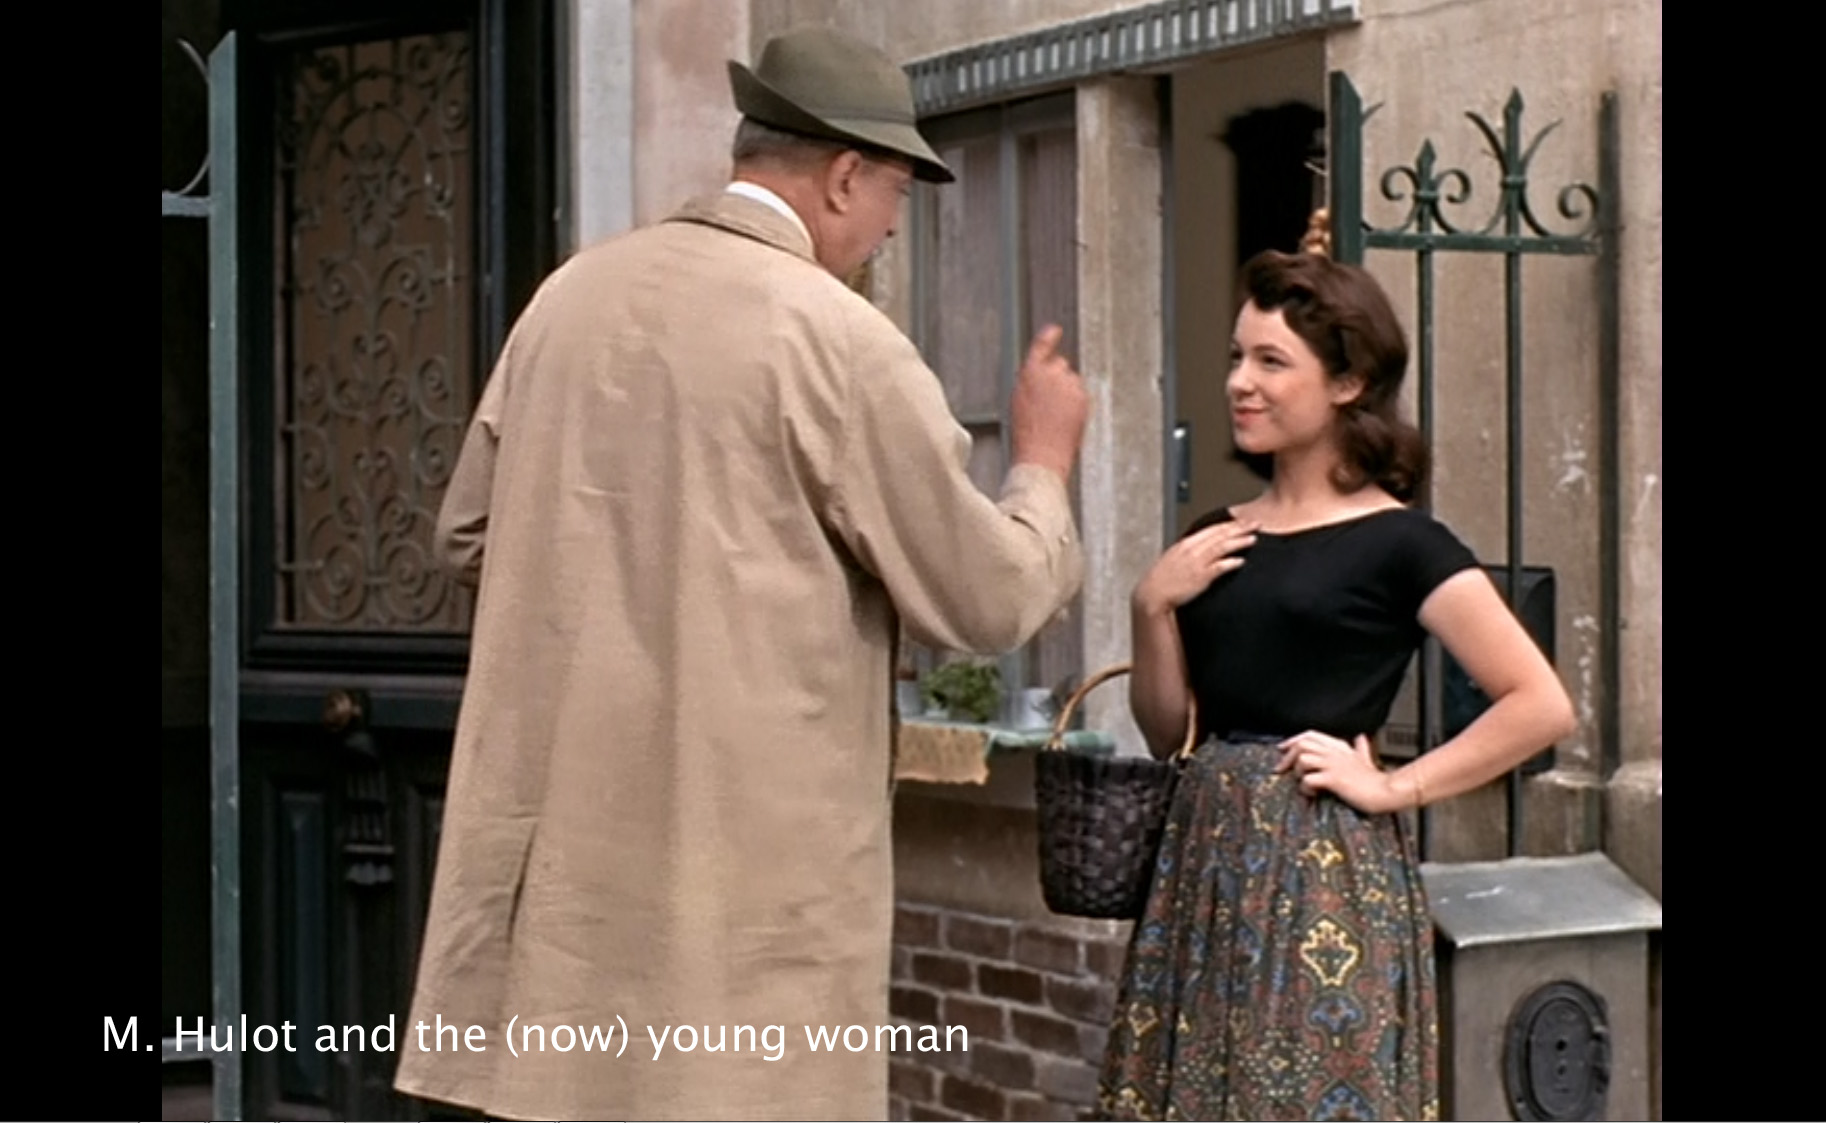 Hulot and the (now) young woman